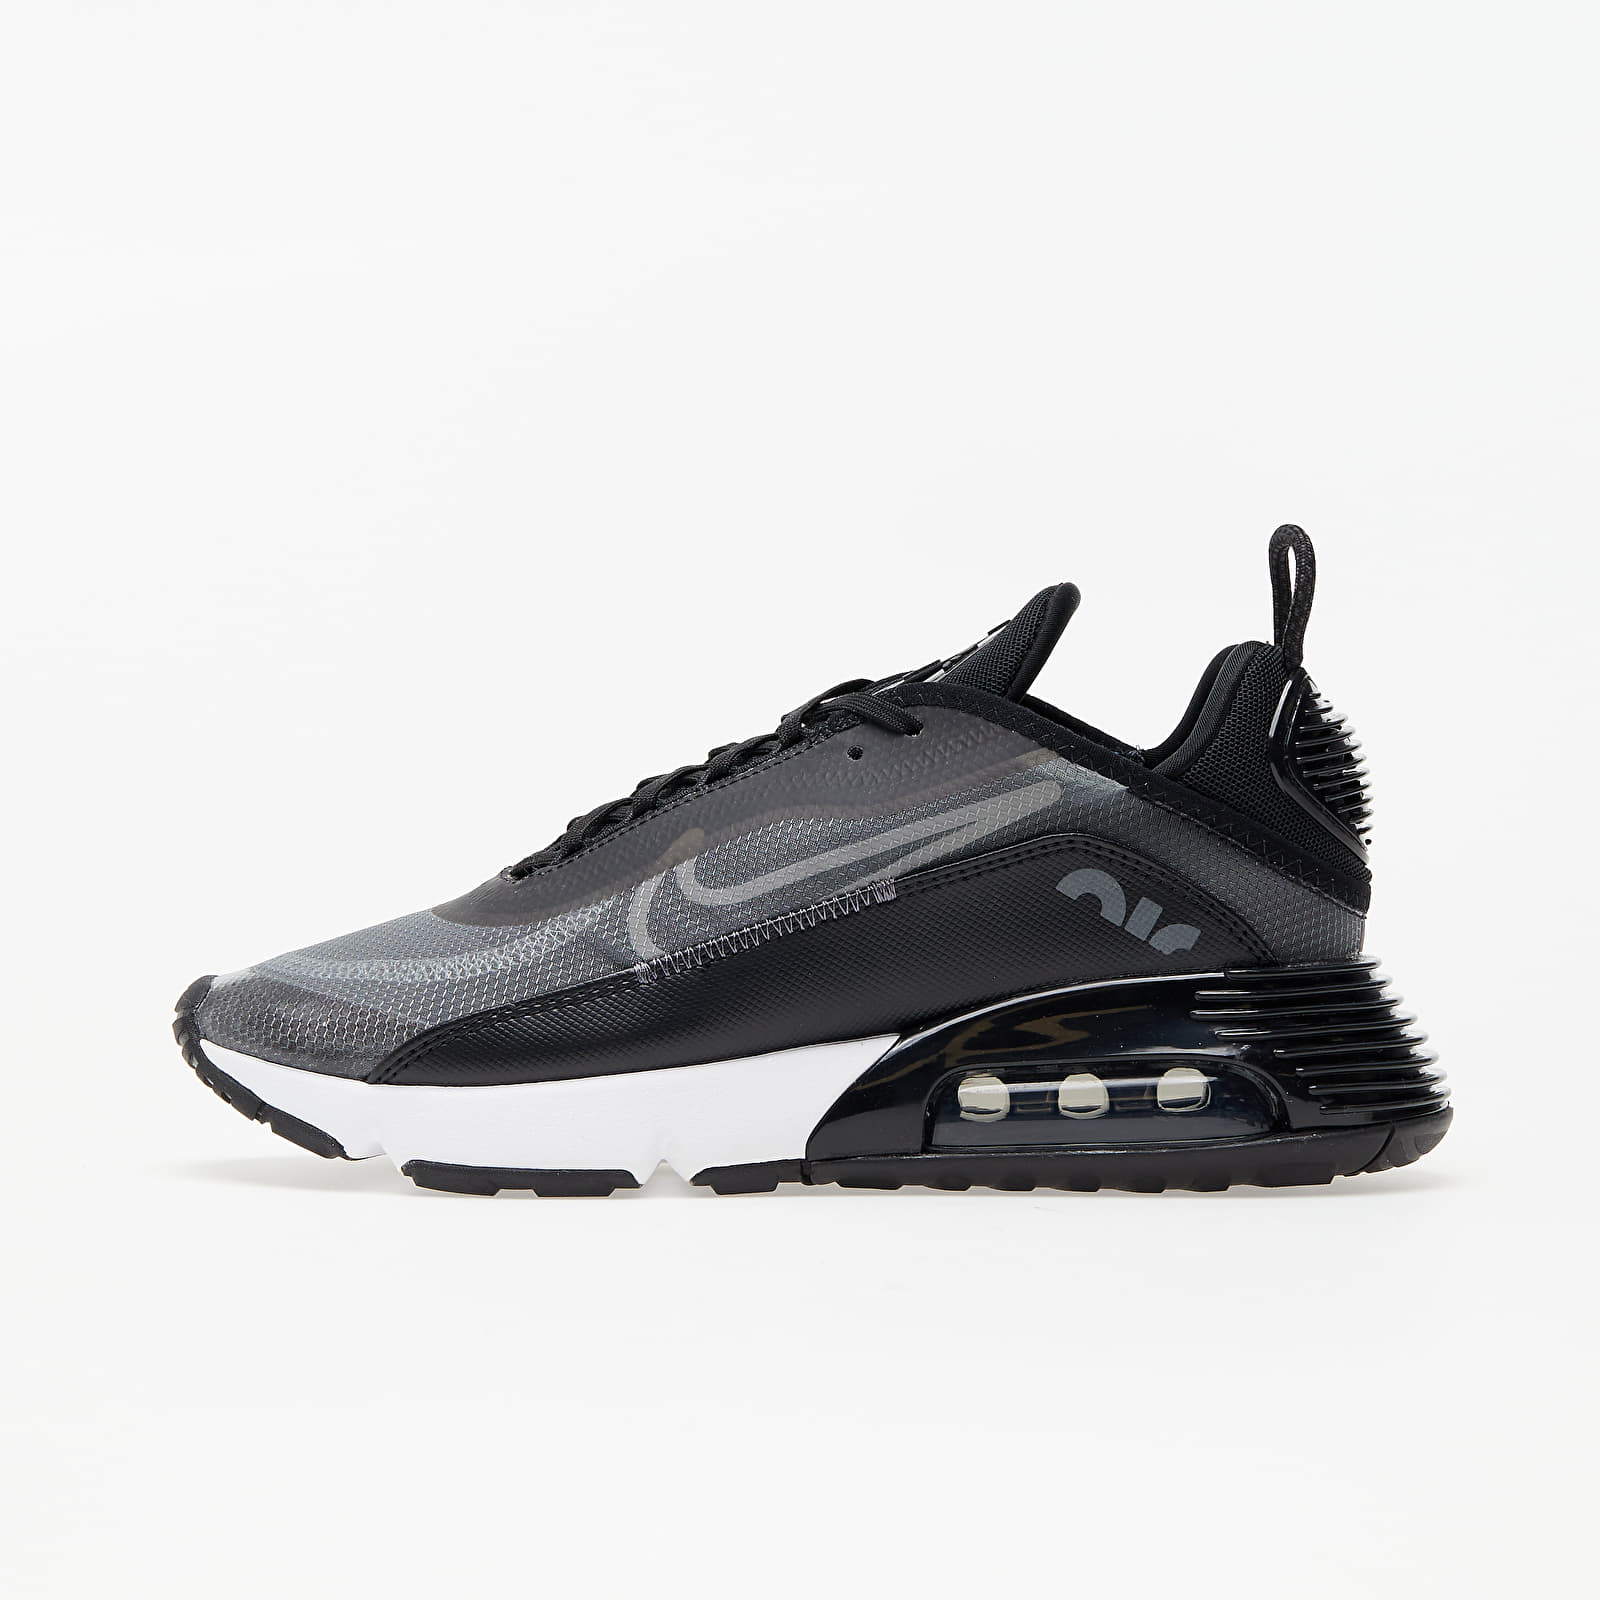 Nike Air Max 2090 Black/ White-Wolf Grey-Anthracite EUR 42